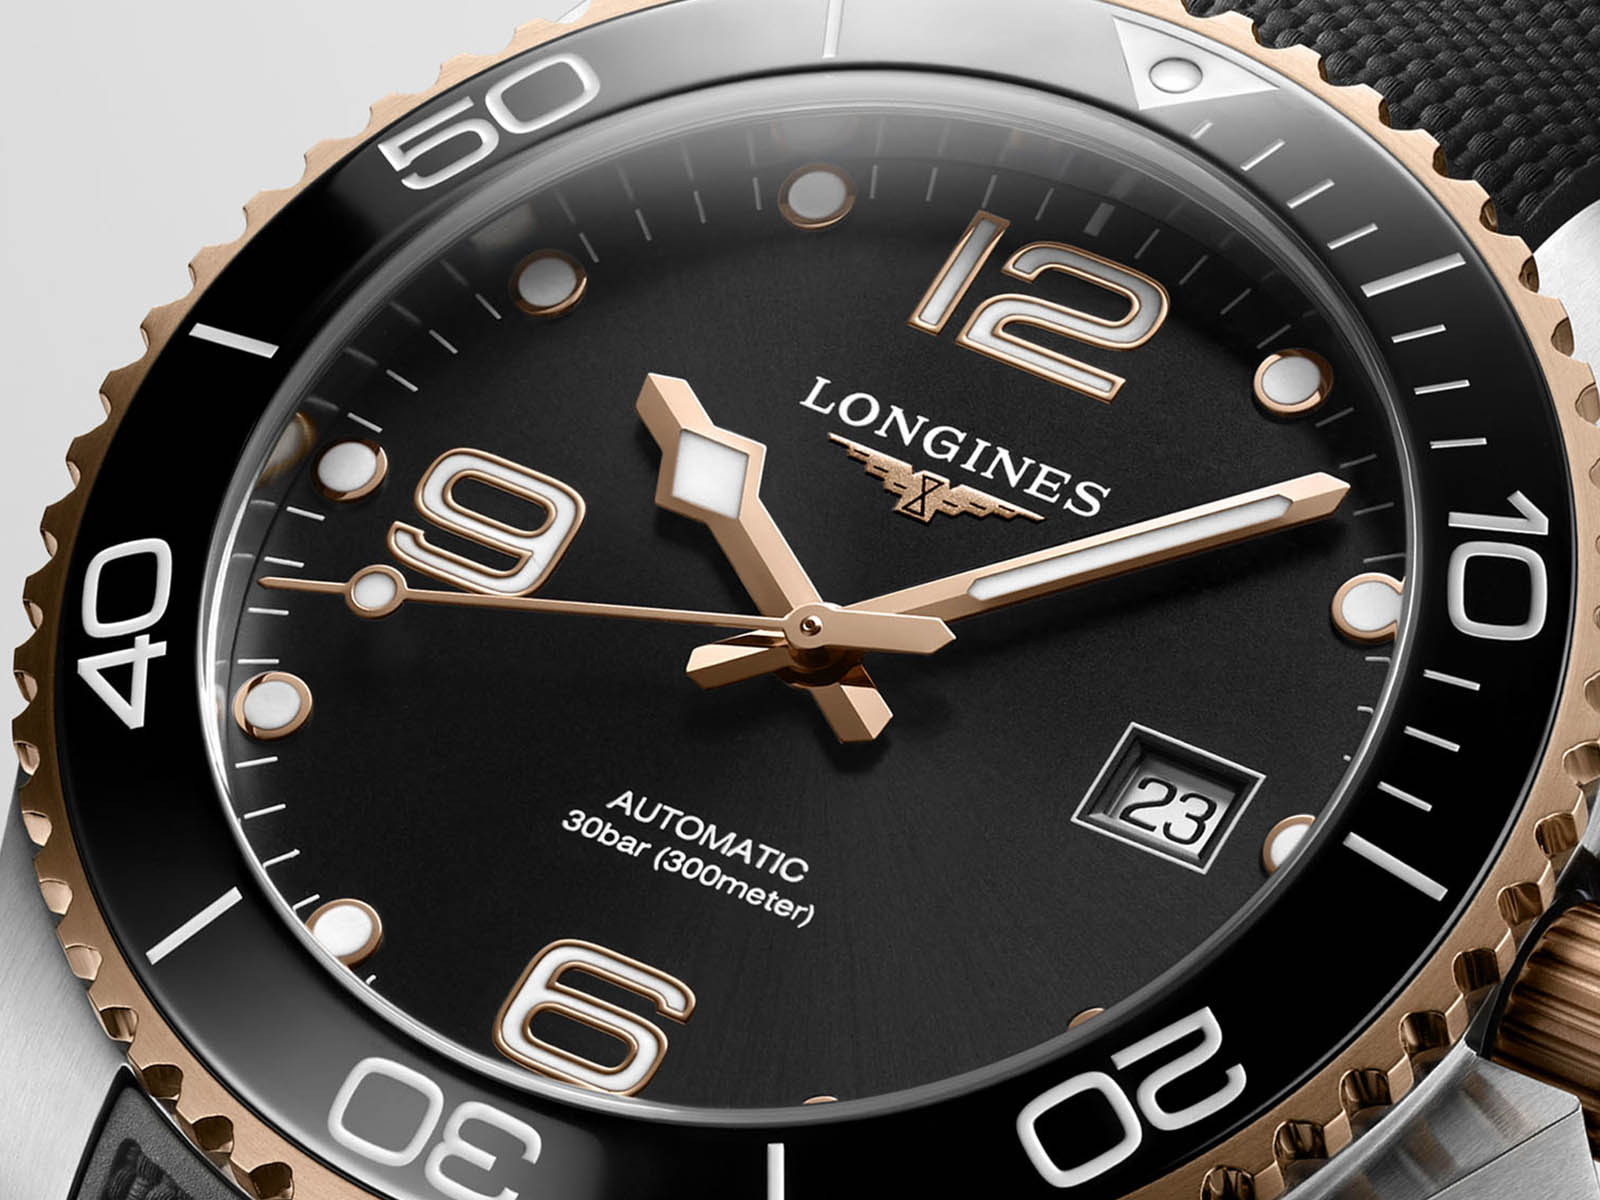 l3-781-3-58-9-longines-hydroconquest-41mm-two-tone-collection-3.jpg